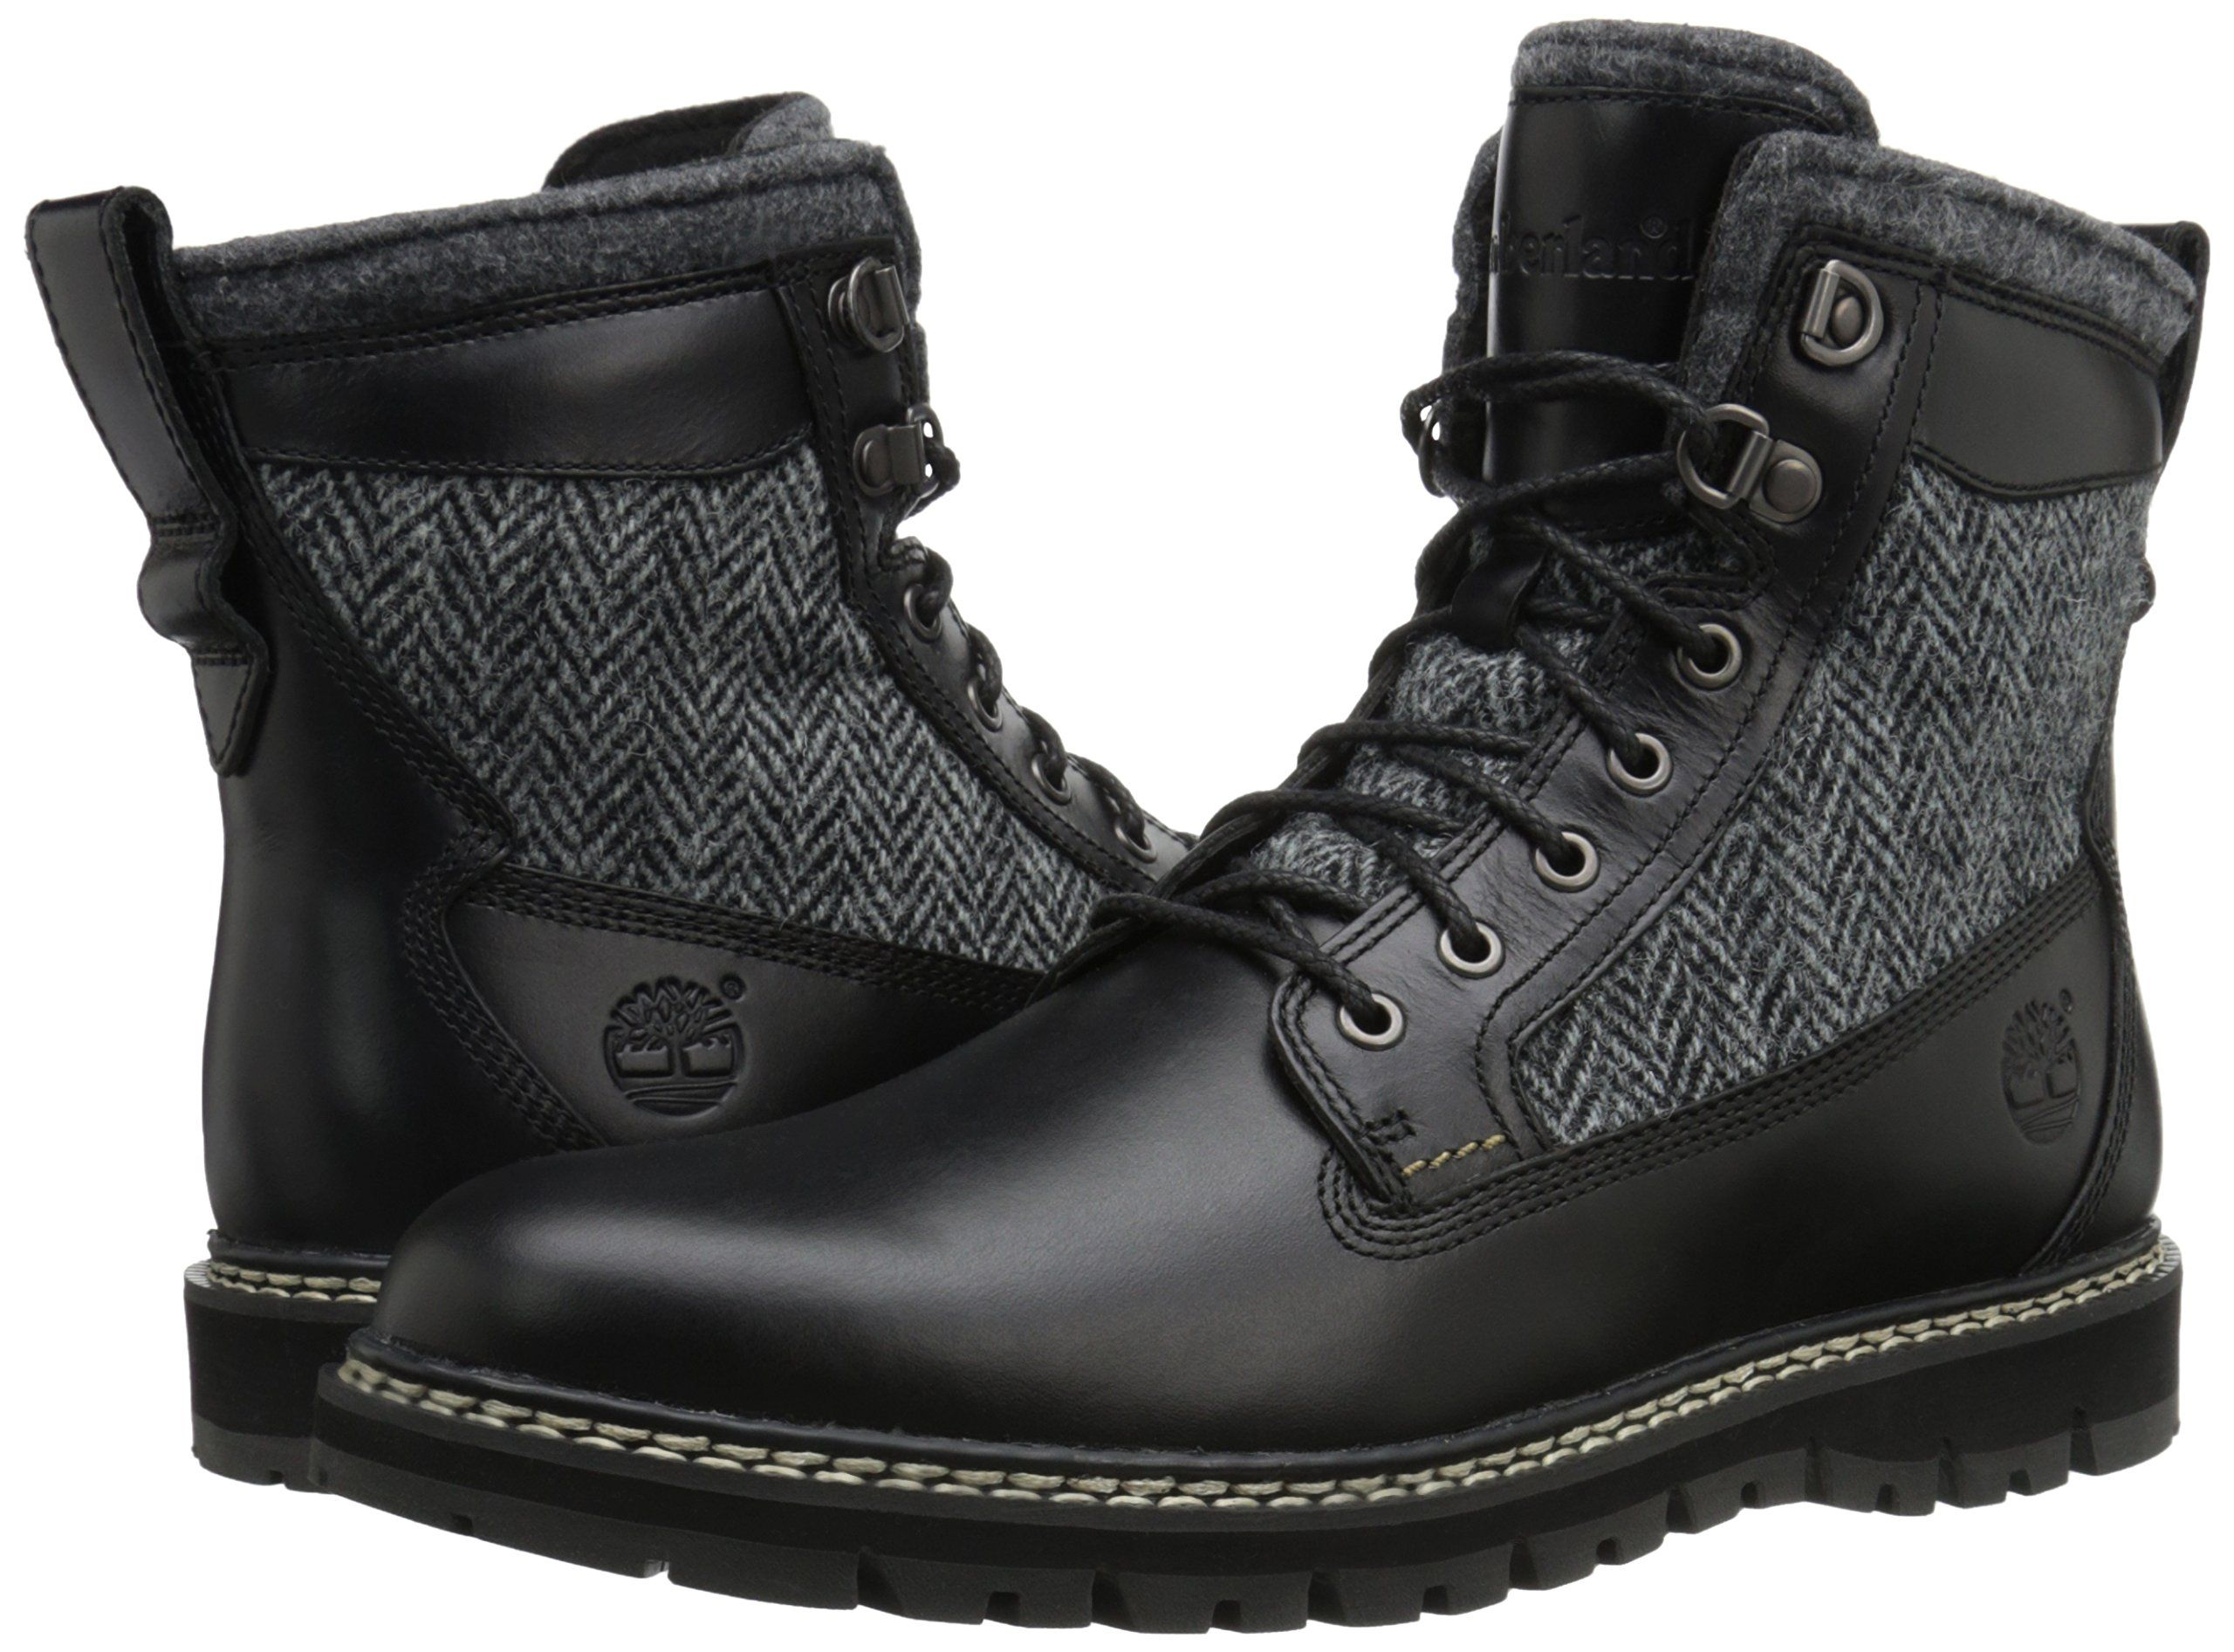 : Timberland Men's Britton Hill 6 Inch Warm Lined